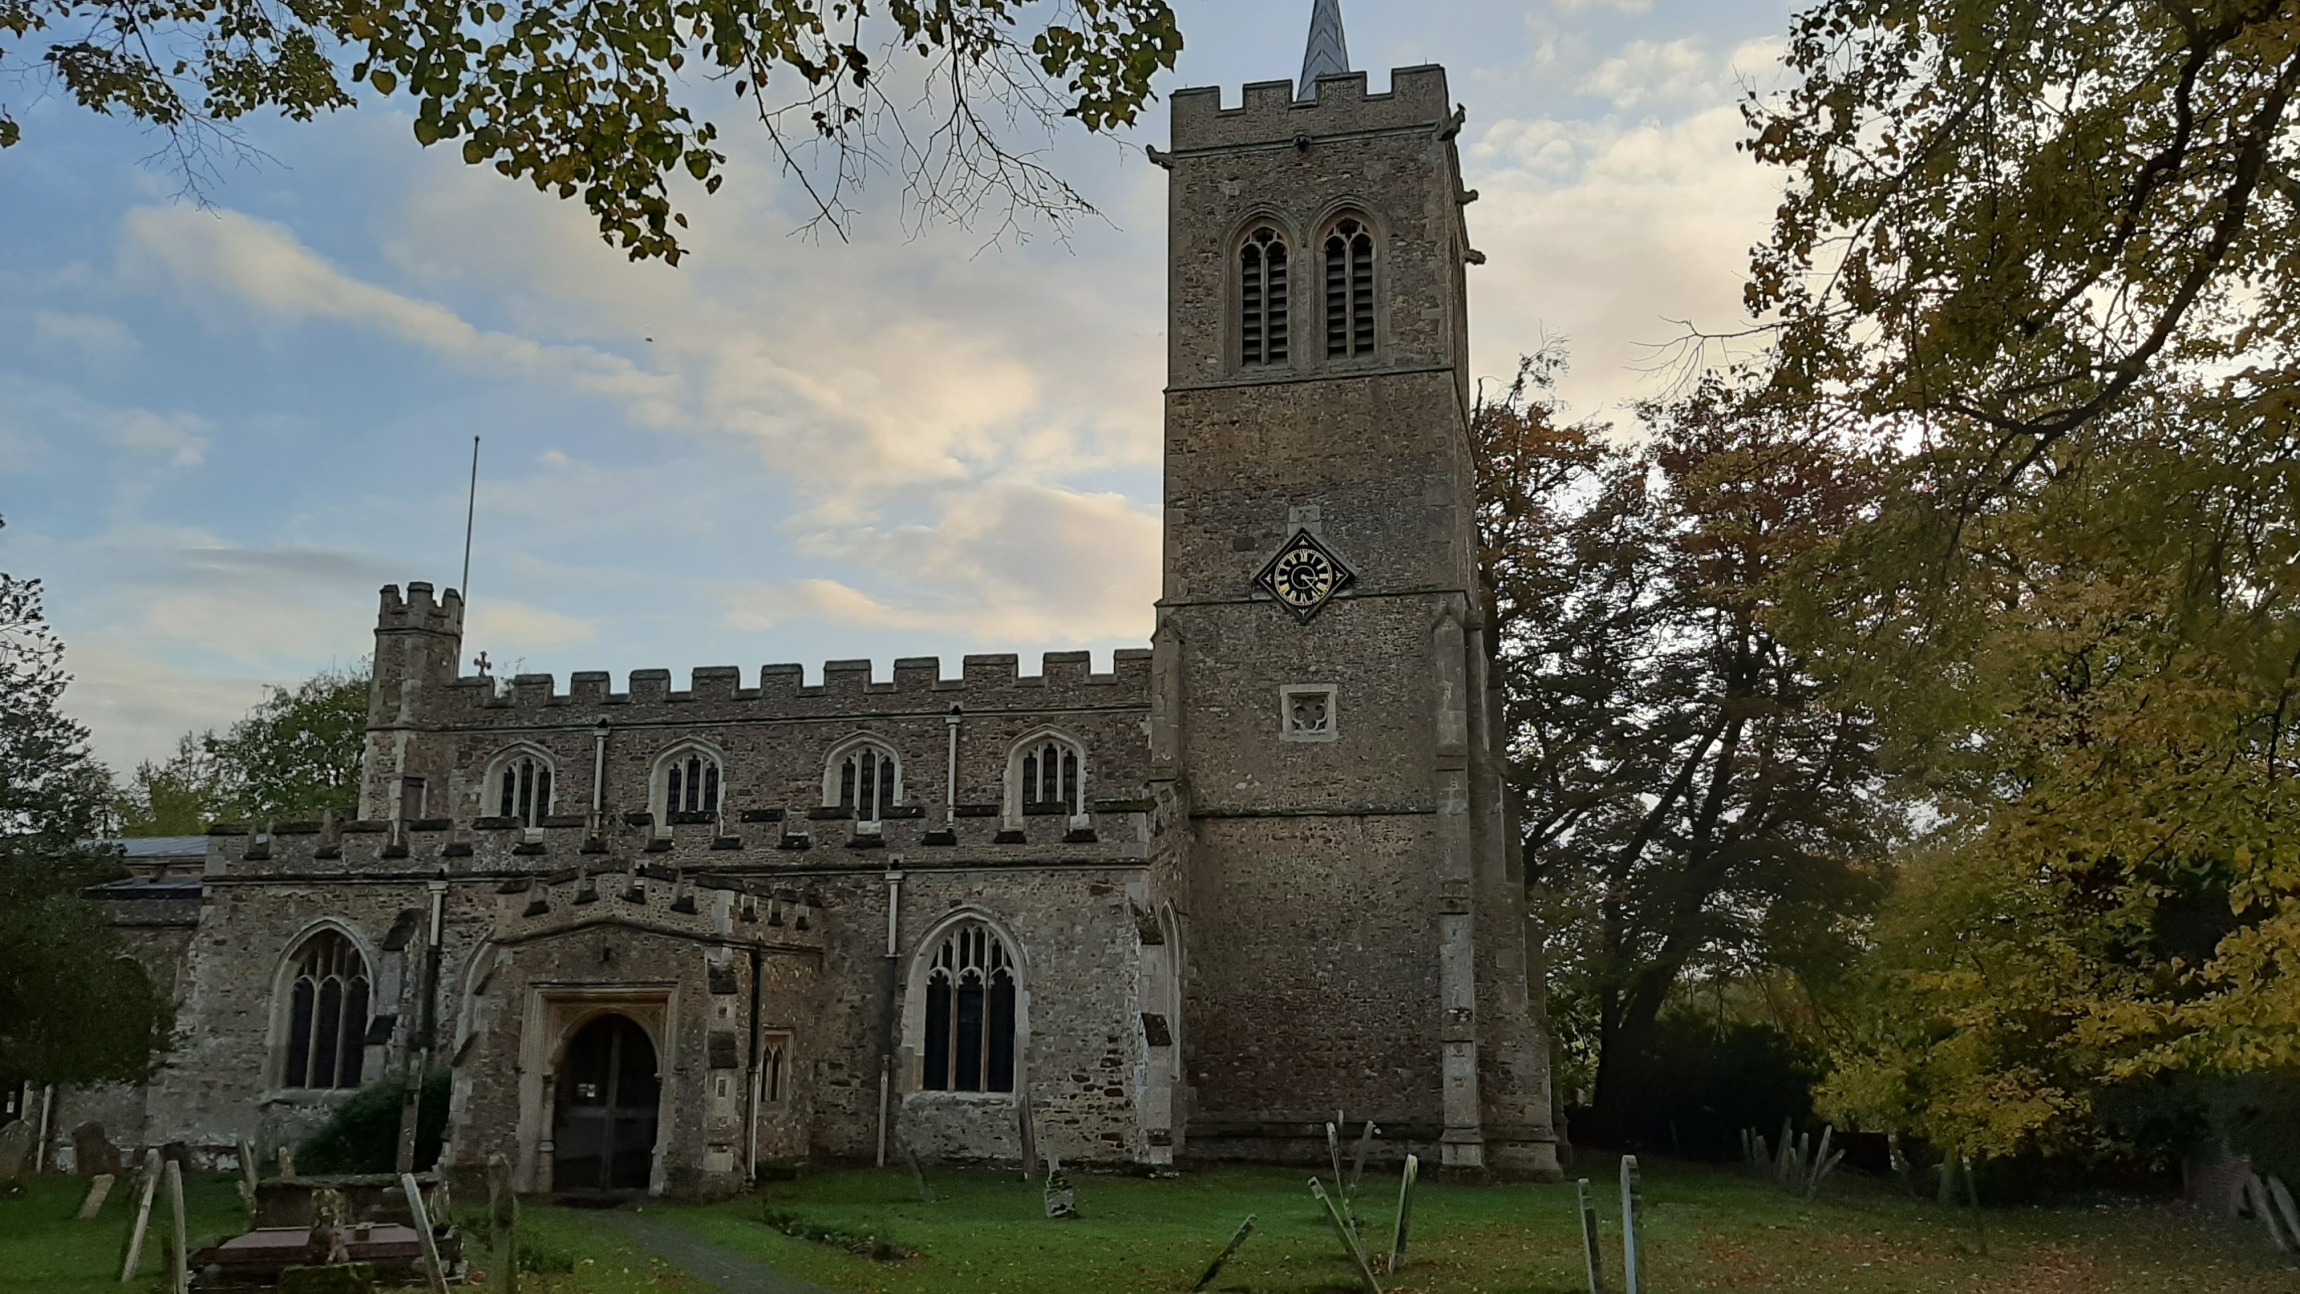 Great Gransden church. Photo taken 4th Nov 2019